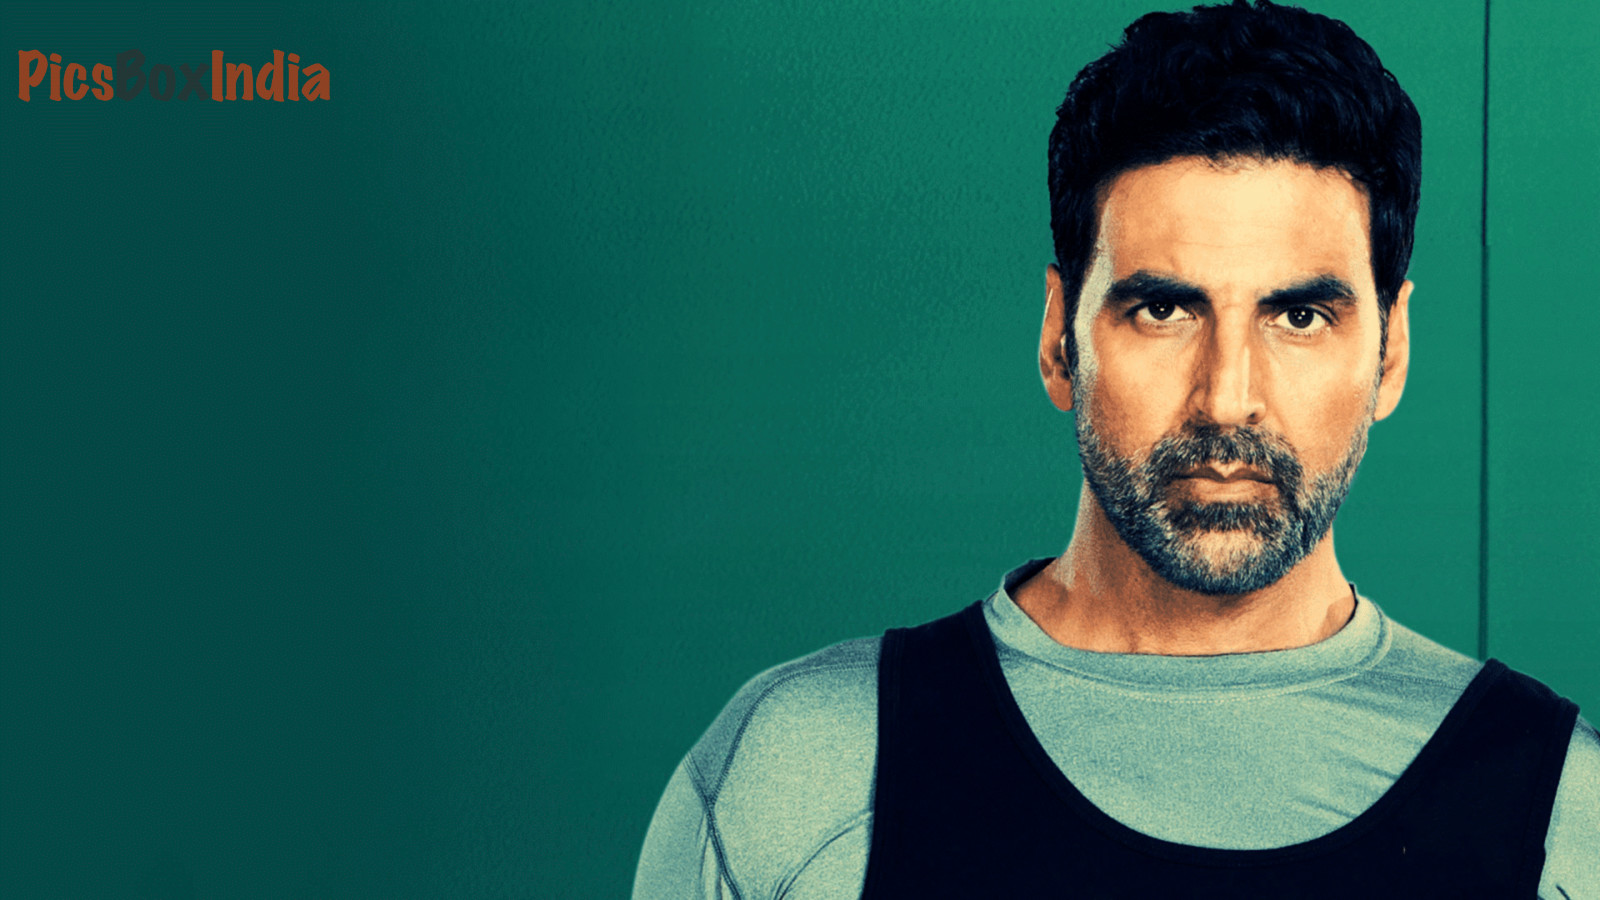 Here Are 18 Most Stylish Photos And Hd Wallpapers Of Bollywood Actor Akshay Kumar